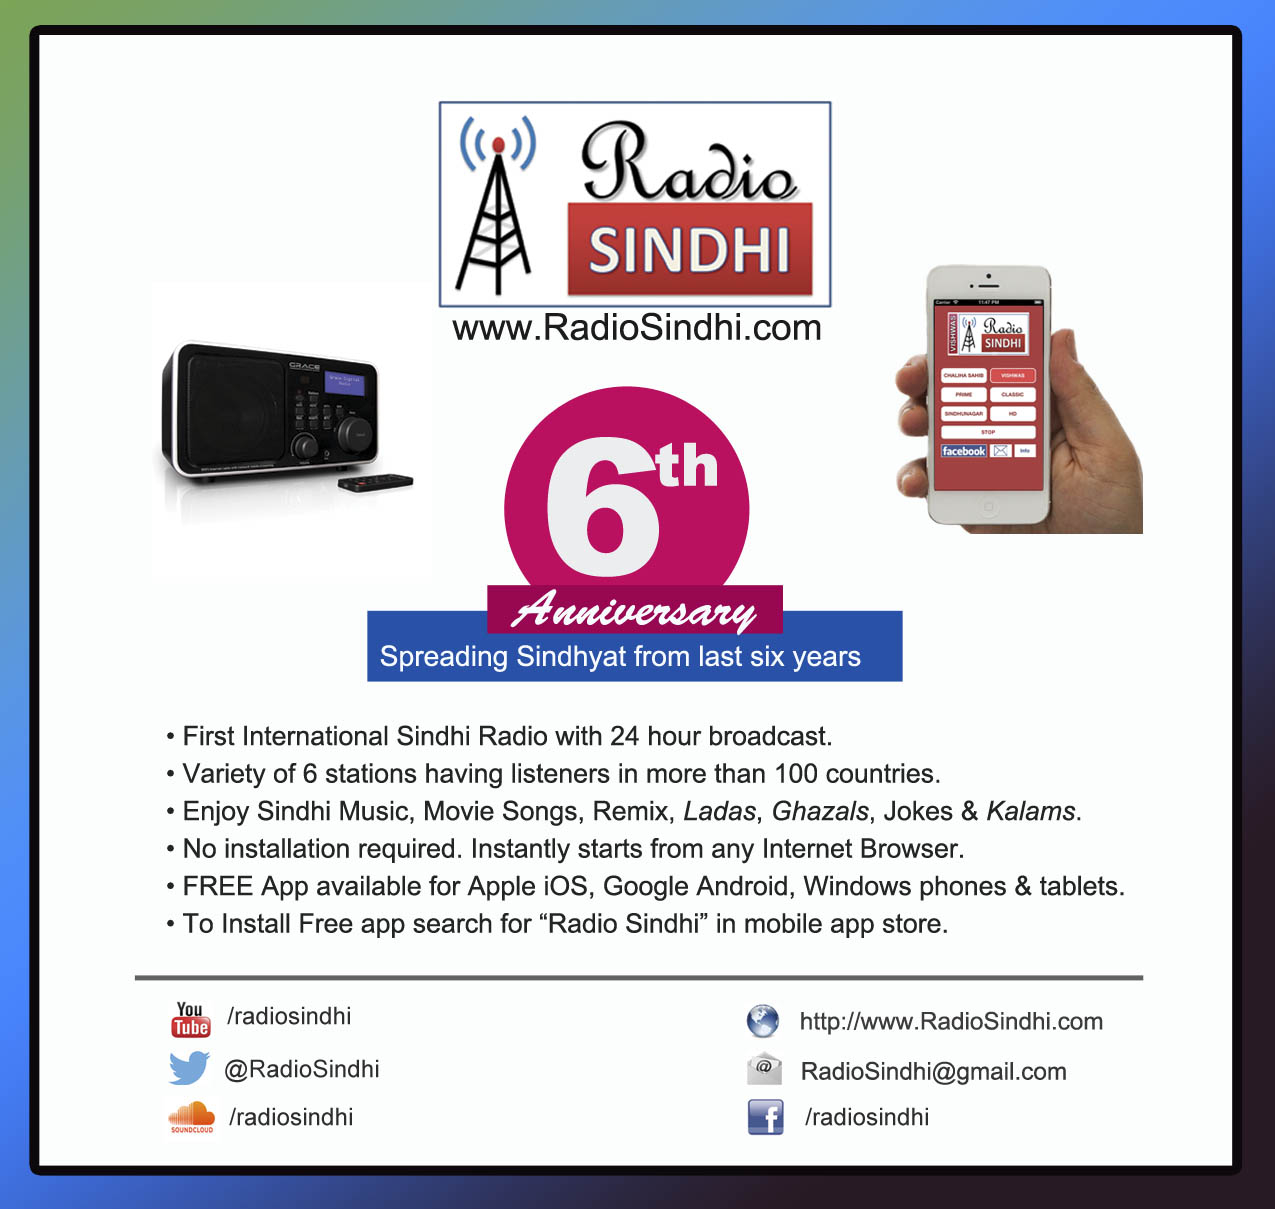 Fifth Anniversary of Radio Sindhi